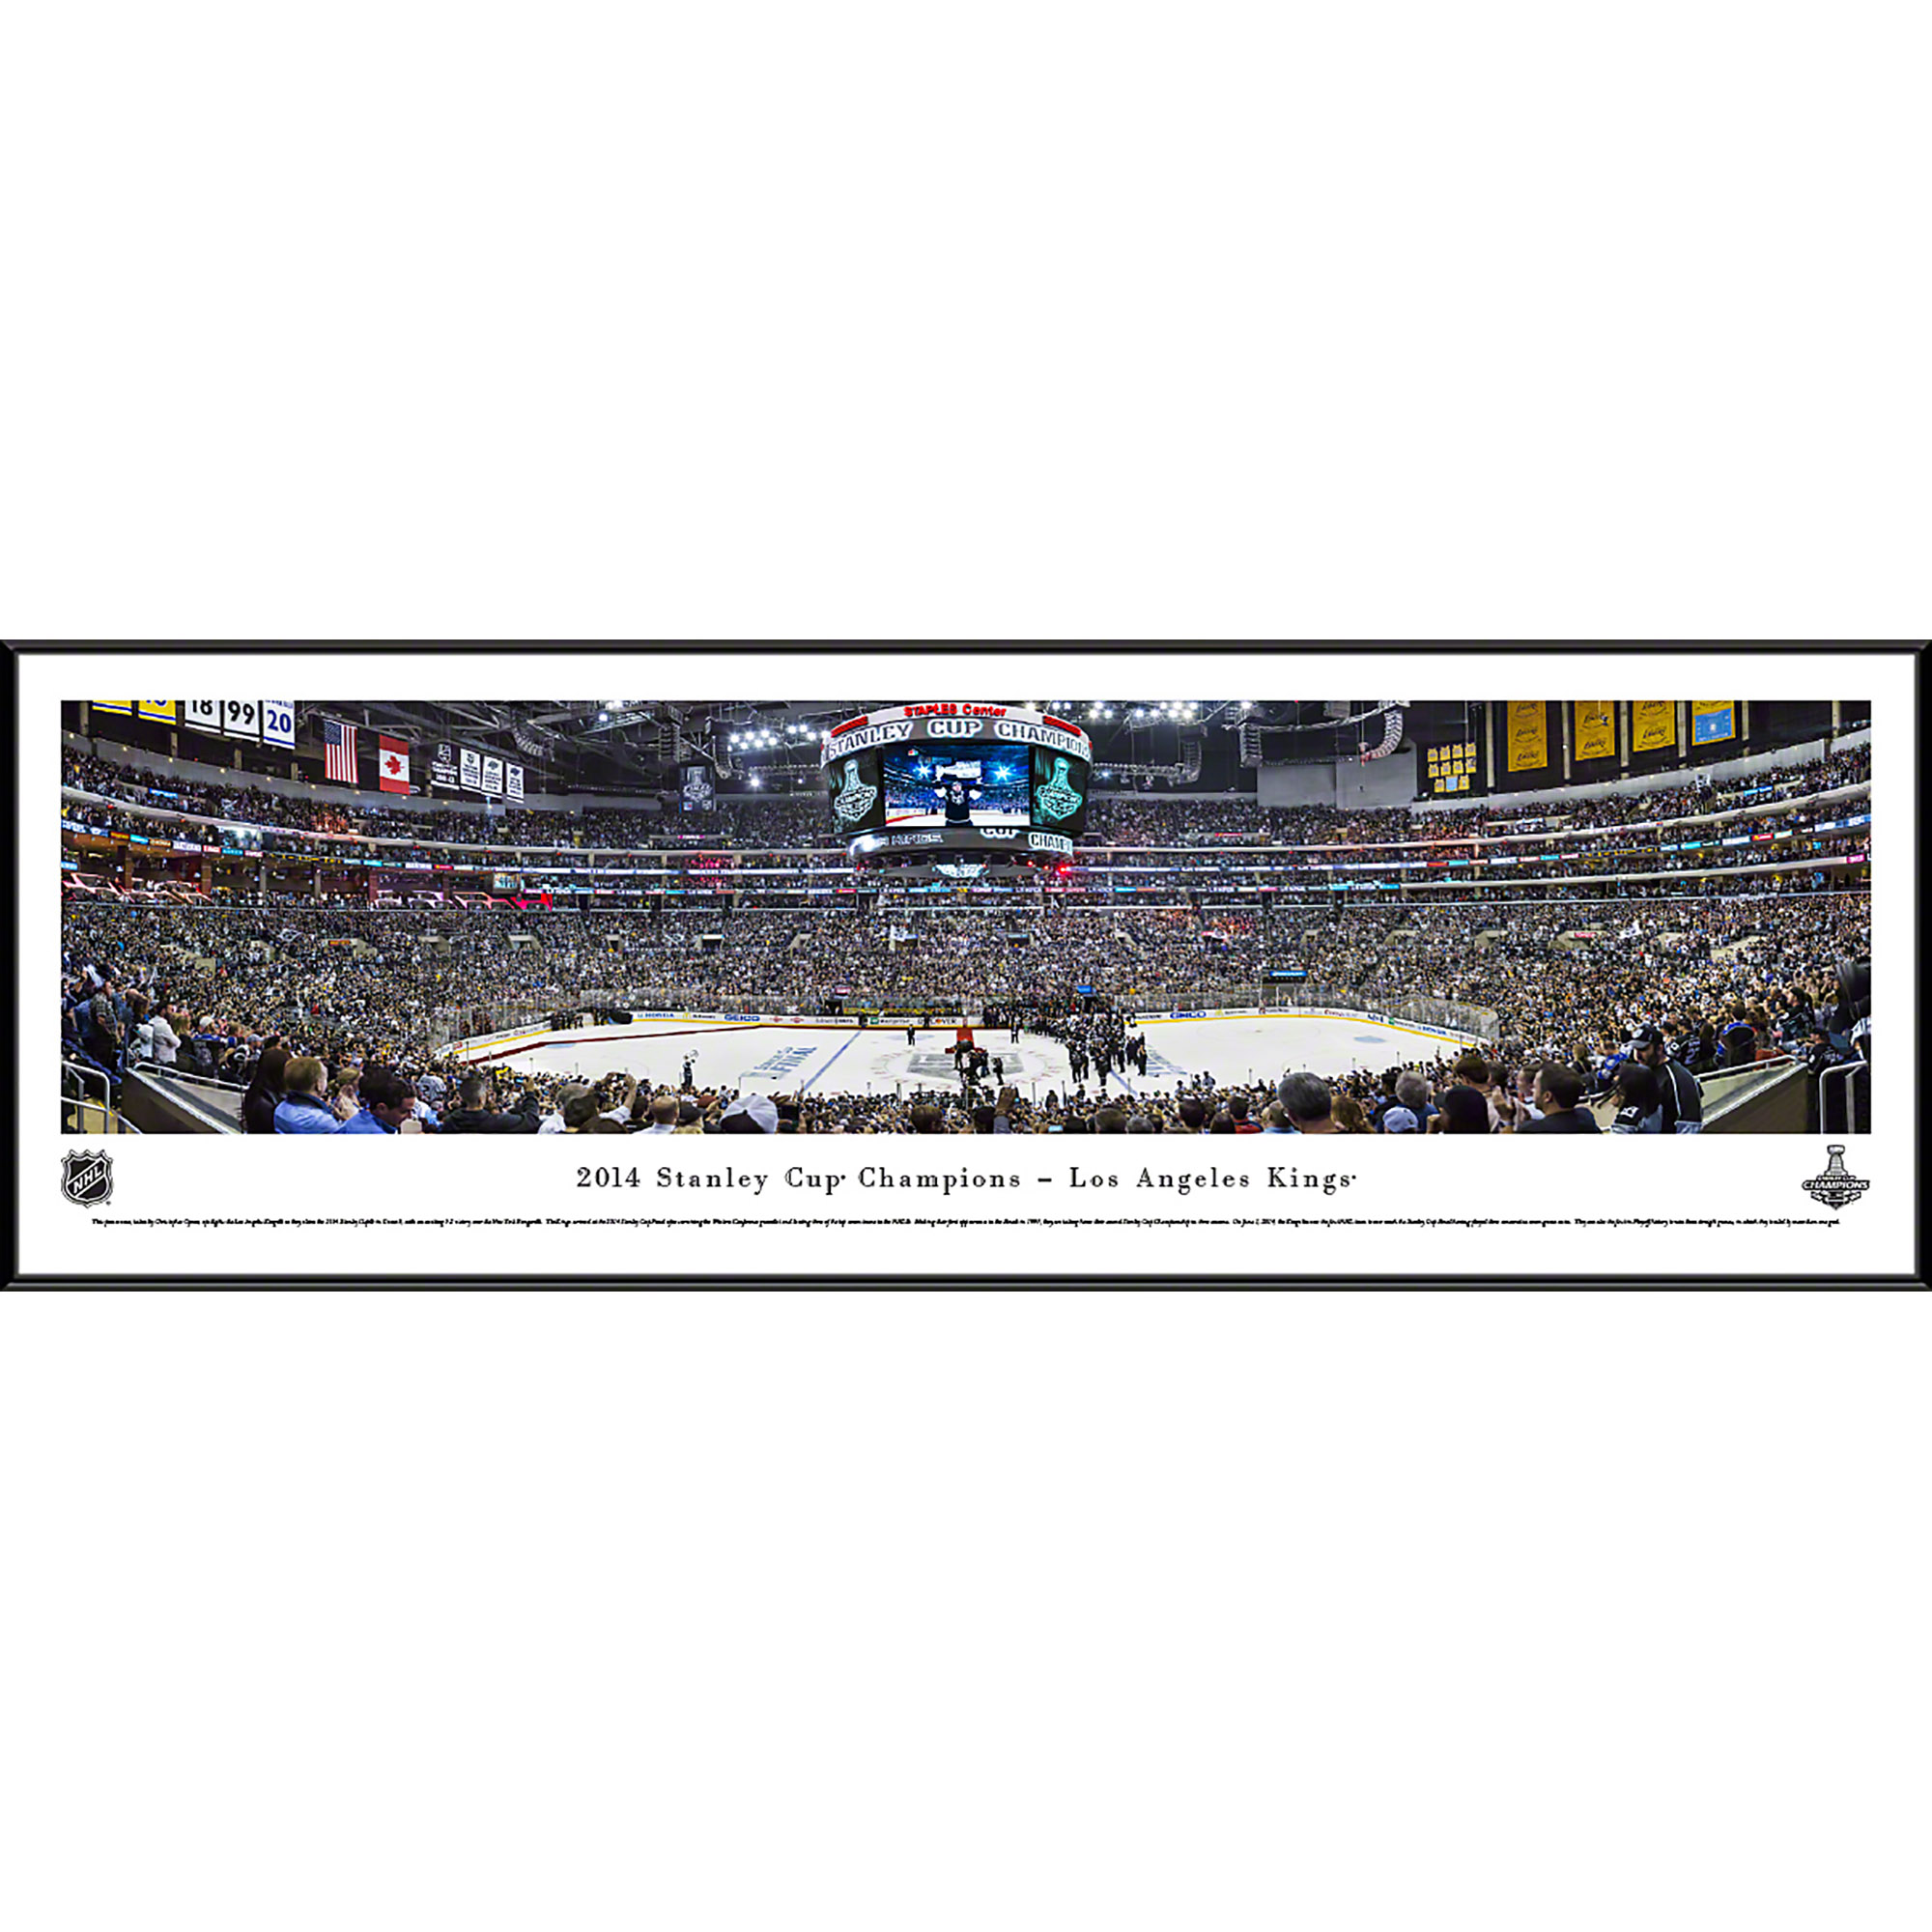 2014 Stanley Cup Champions - Los Angeles Kings - Blakeway Panoramas NHL Print with Standard Frame